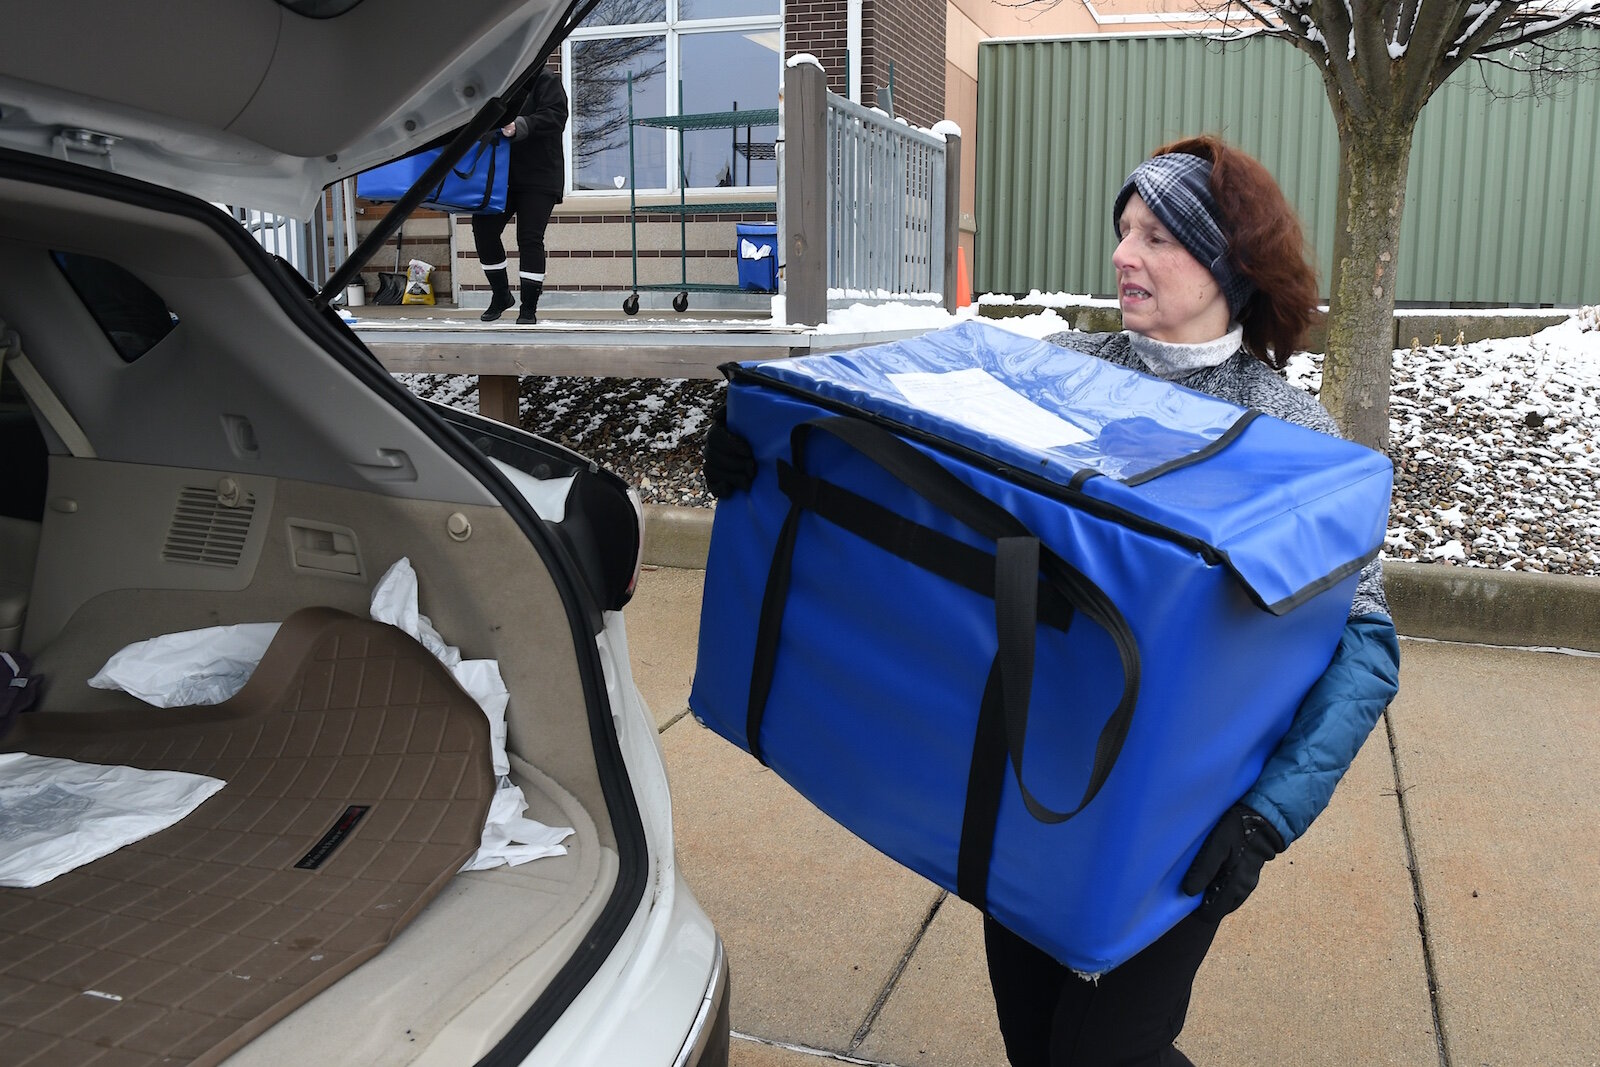 Theresa Burke loads up meals to be delivered into her vehicle.